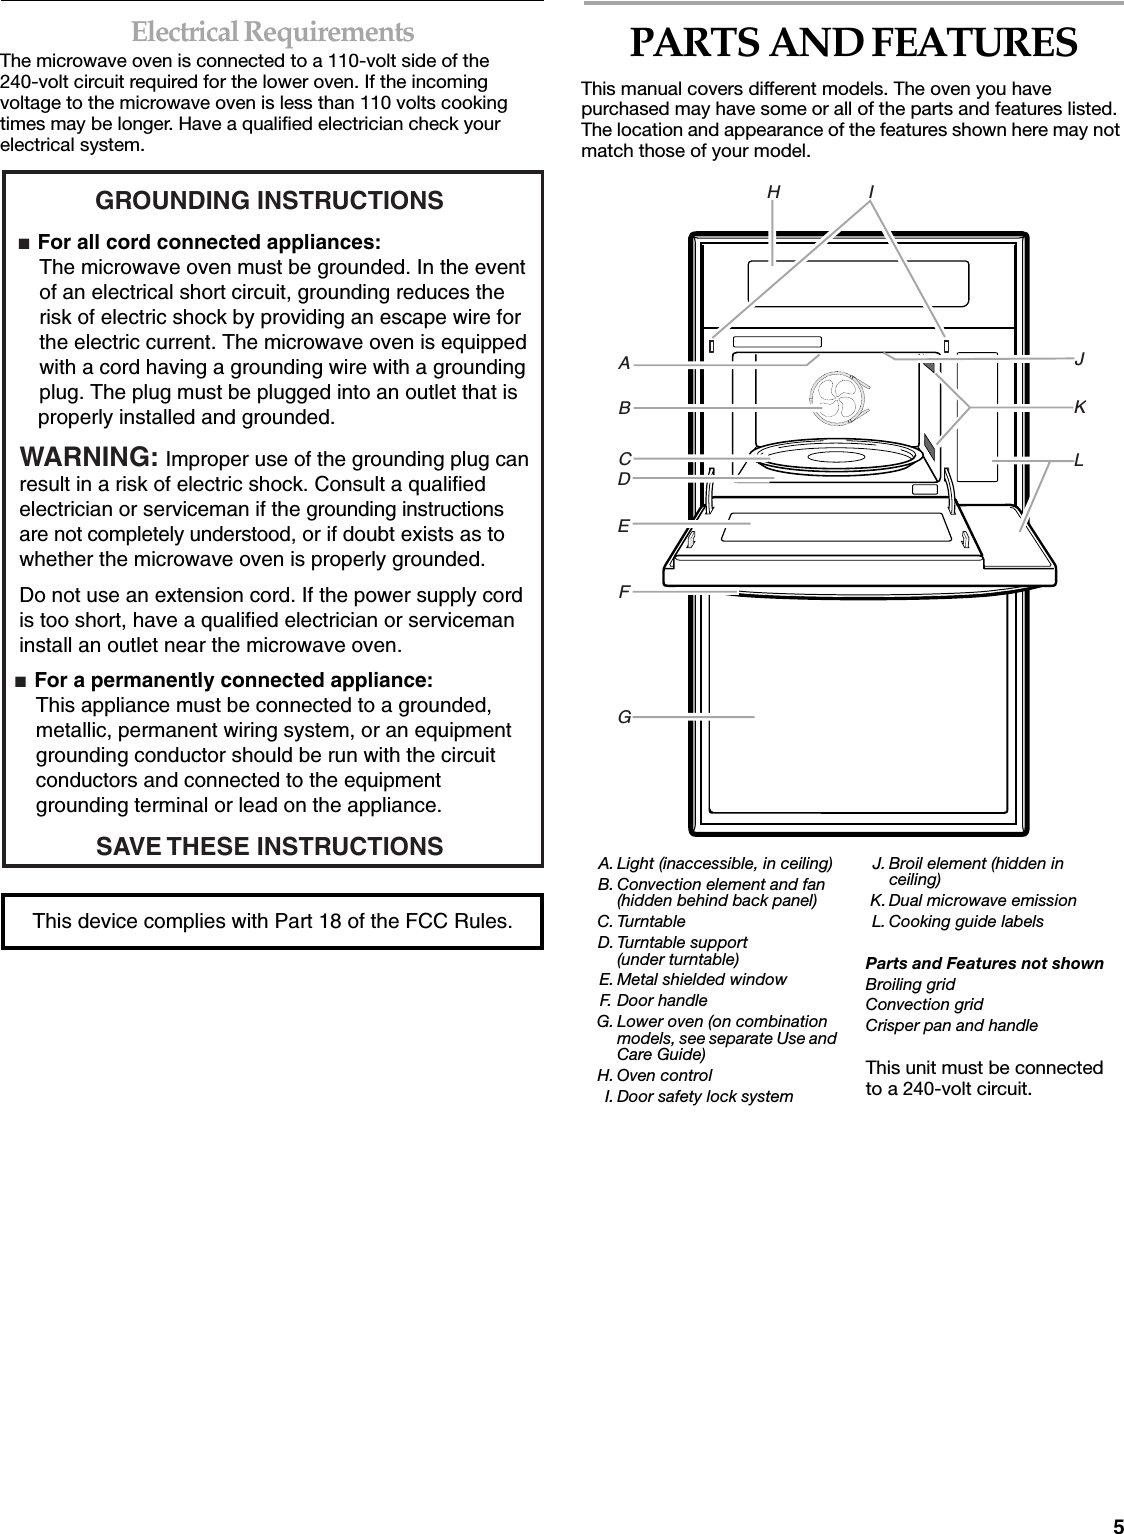 Whirlpool Europe S R L Dedicmwe00 Built In Microwave Oven User Manual V Circuit 5electrical Requirementsthe Is Connected To A 110 Volt Side Of The 240